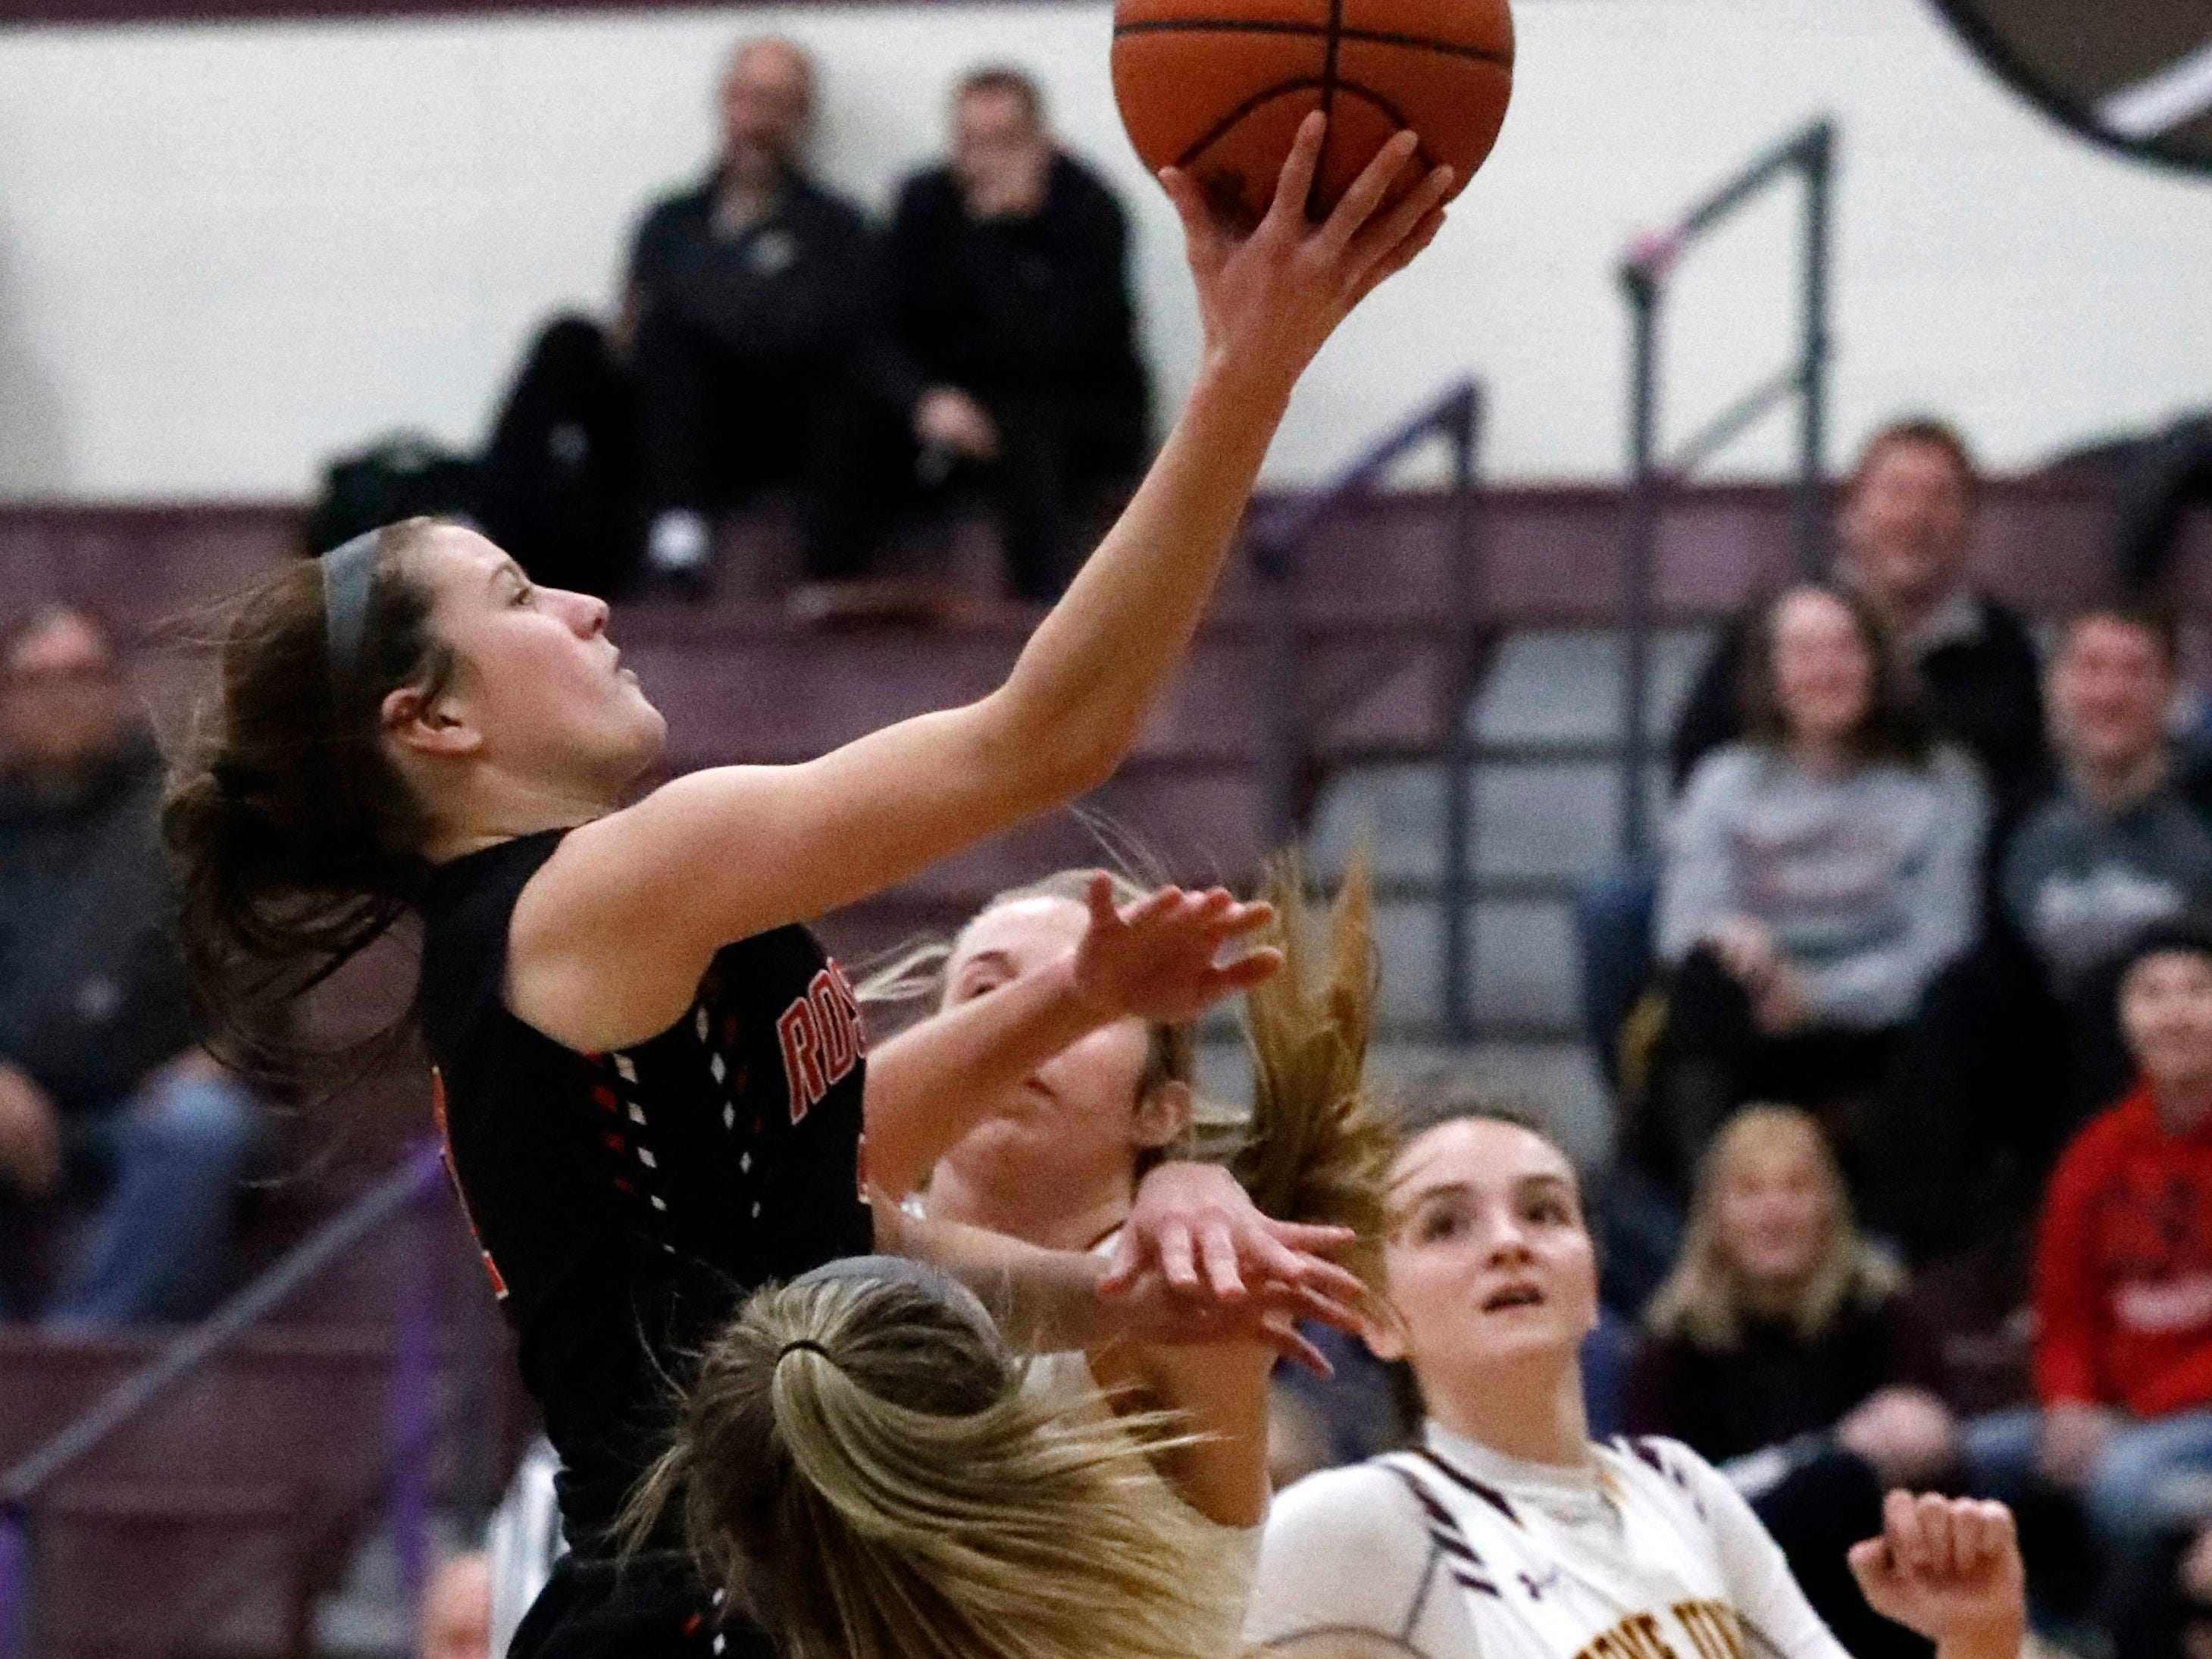 Bishop Rosecrans' Kailey Zemba goes for a layup during Friday night's game, Feb. 8, 2019, at Berne Union High School in Sugar Grove. The Bishops defeated the Rockets 46-43.